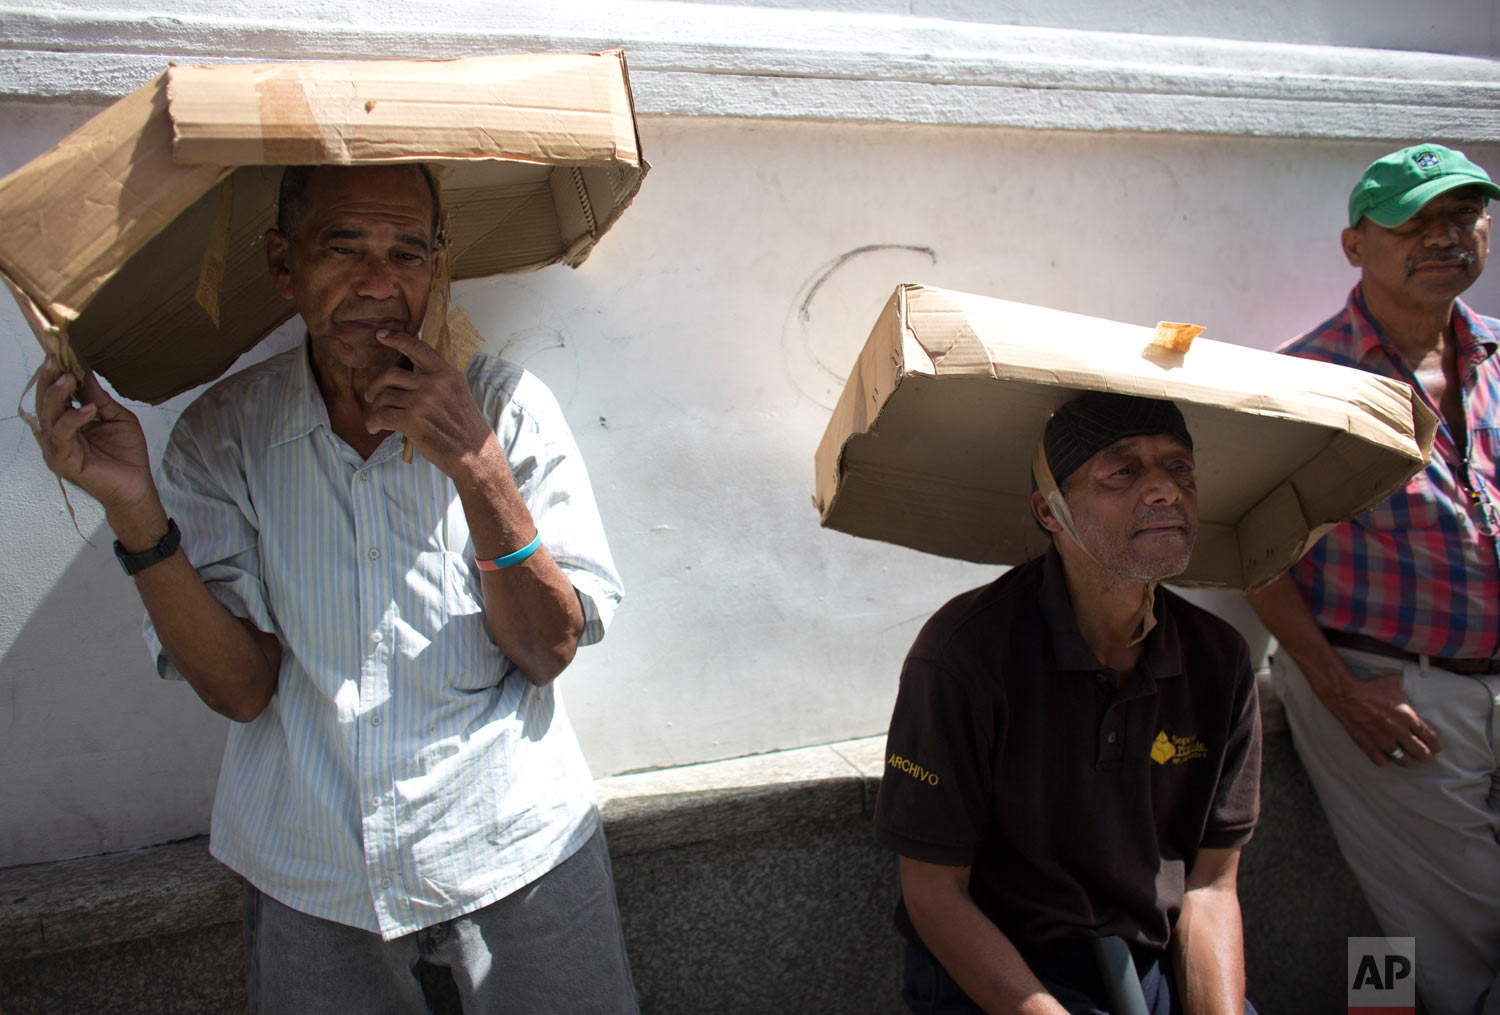 Men utilize cardboard boxes to shade themselves from the sun's rays sun as they wait in line to take part in a vehicle census announced by Venezuela President Nicolas Maduro, as a first step to regulate the sale of gasoline, at Bolivar Square in Caracas, Venezuela, Aug. 3, 2018. The census started today. (AP Photo/Ariana Cubillos)